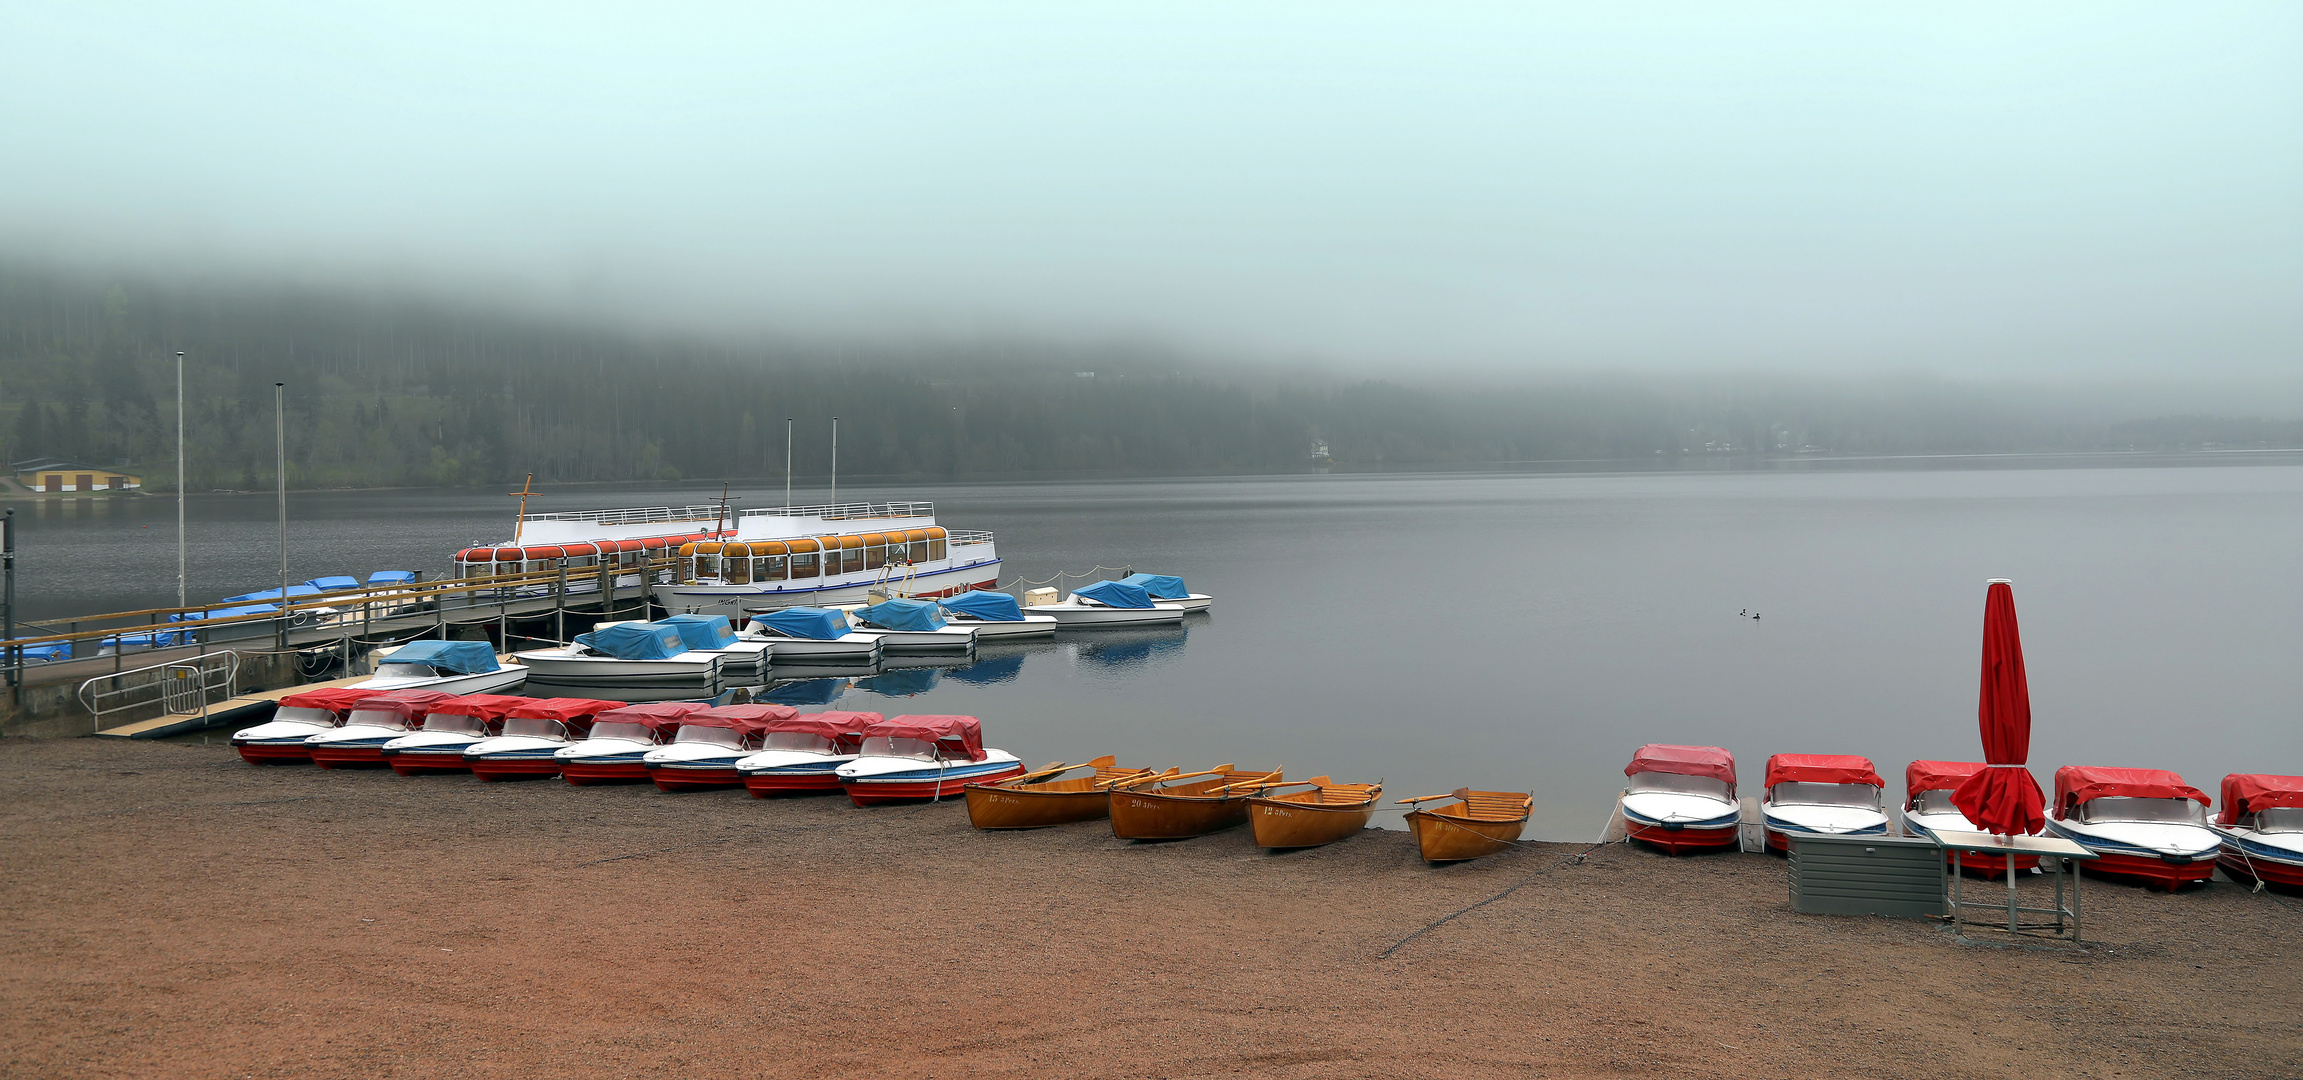 Titisee 7 h 41